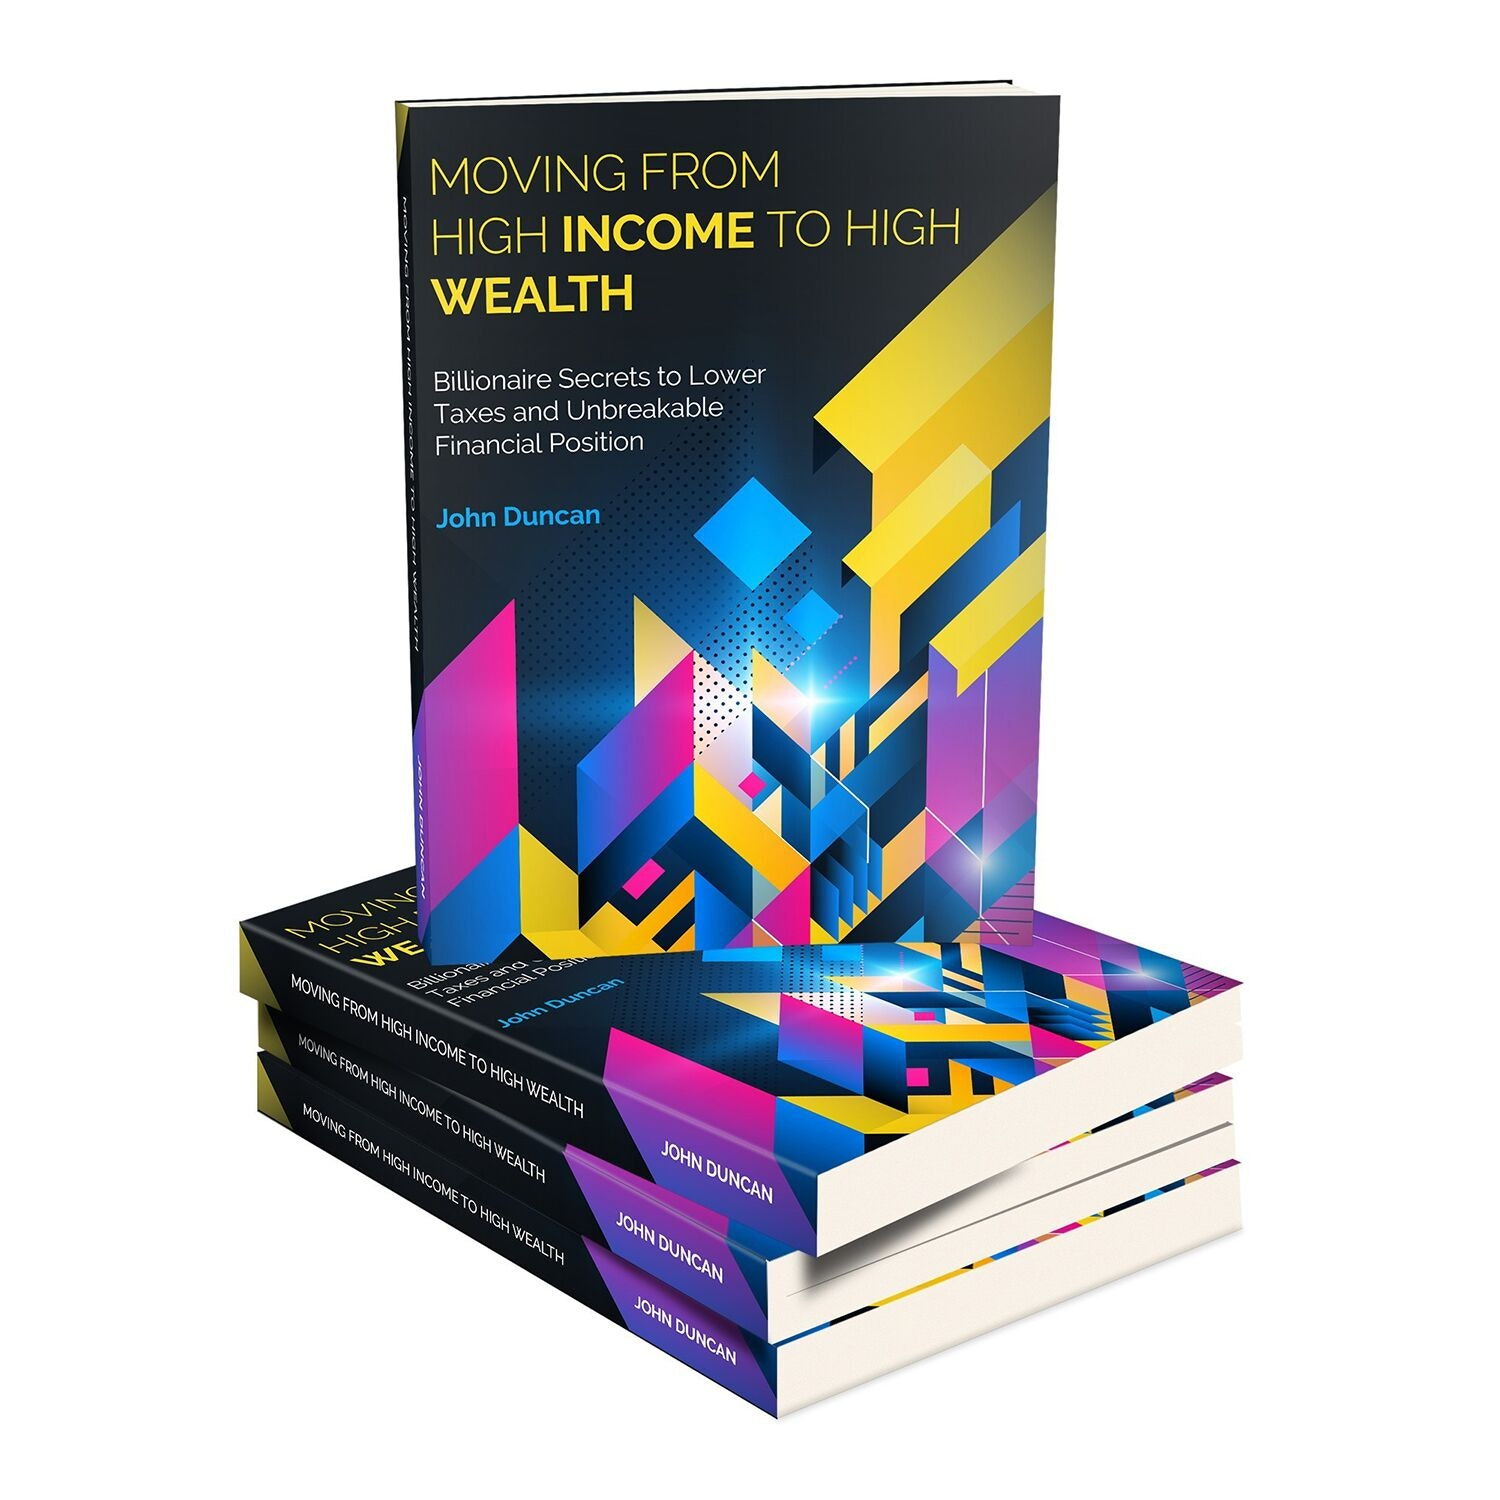 Financial planning book cover design